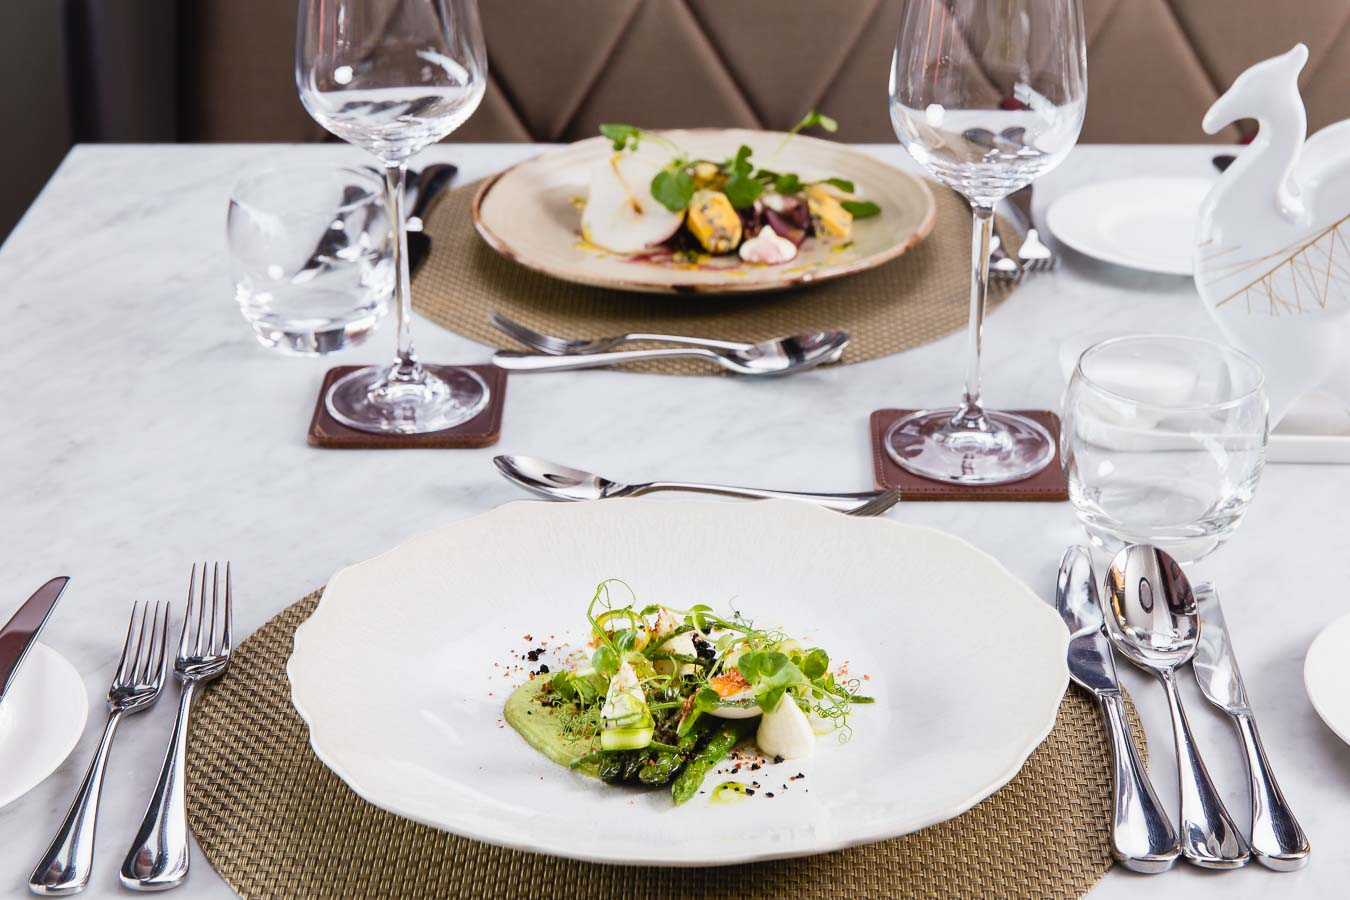 Fine dining table setting with textured place mats and two plates of carefully prepared food, polished cutlery and wine glasses